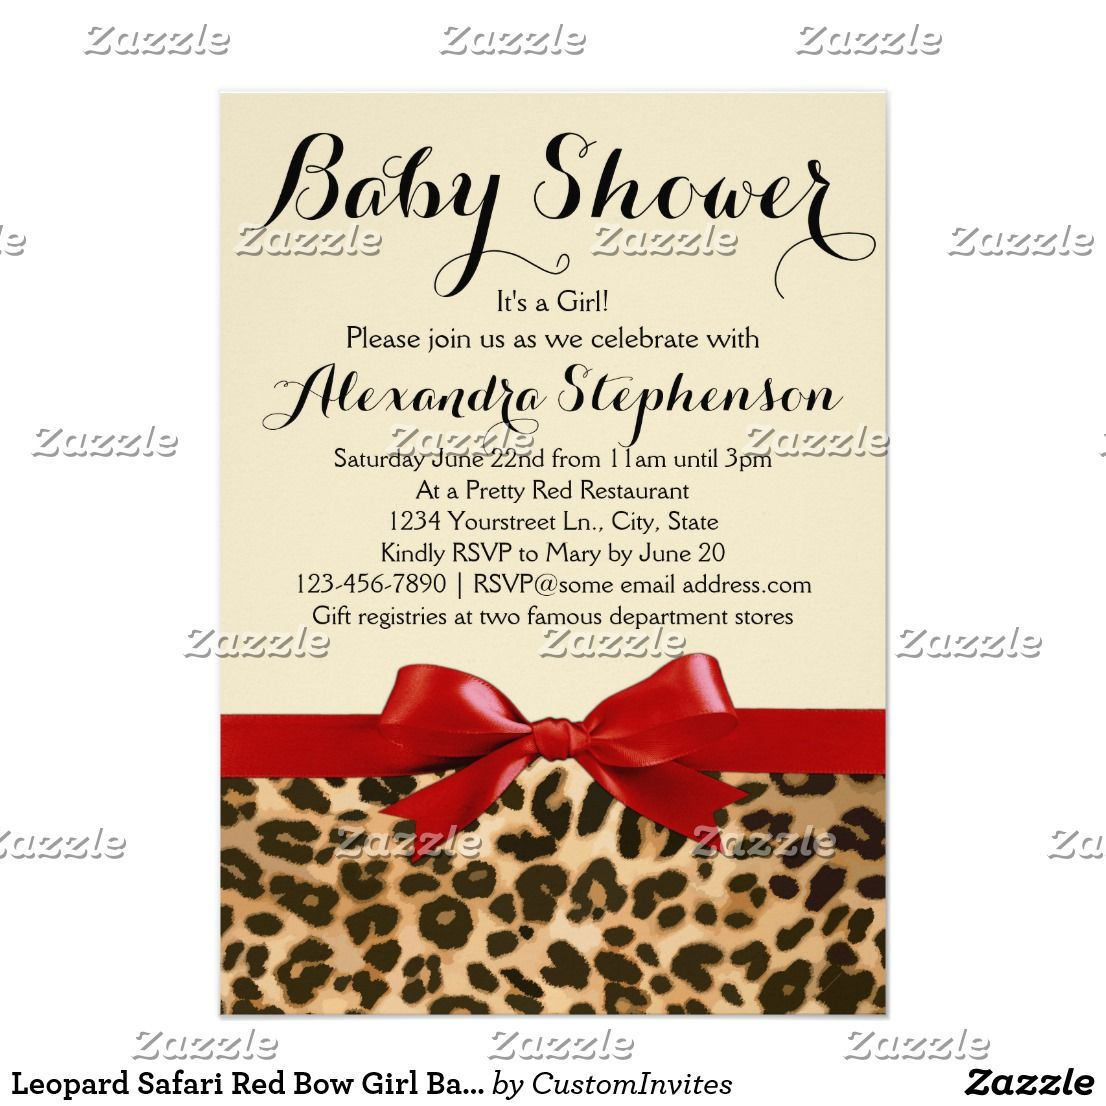 Leopard Safari Red Bow Girl Baby Shower Invitation | Fun baby and ...